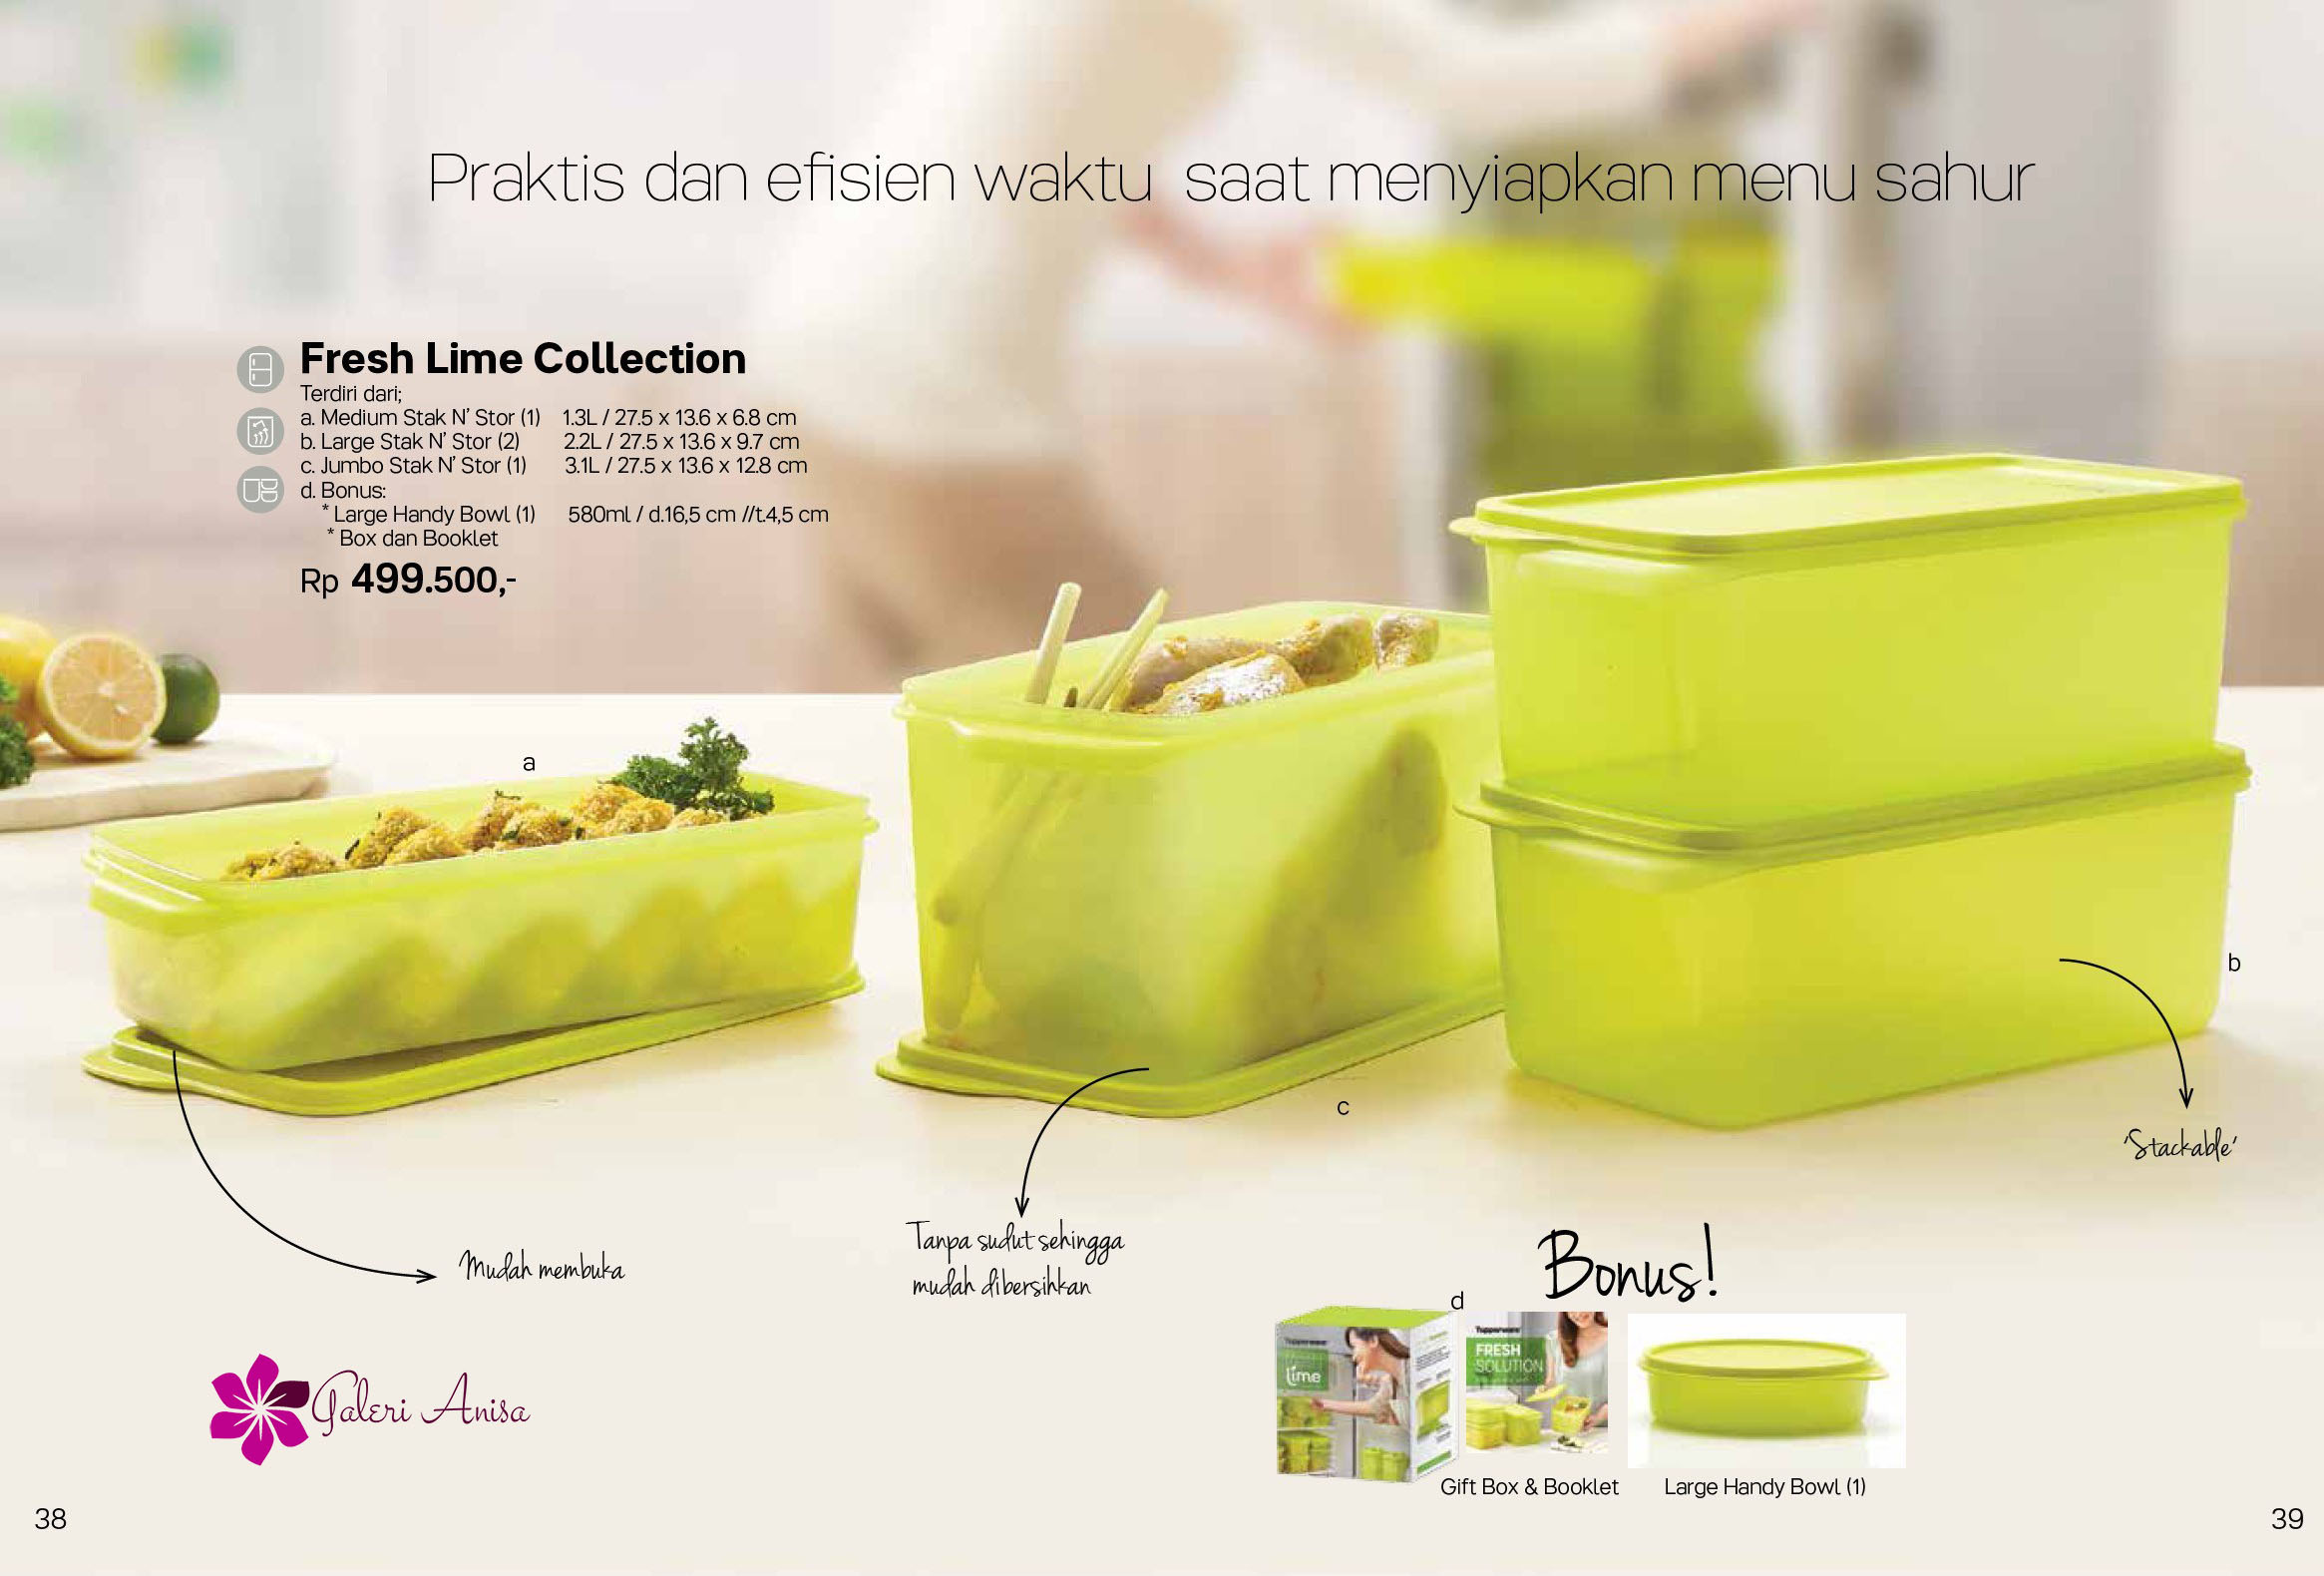 Fresh Lime Collection Tupperware Promo Mei 2017 19